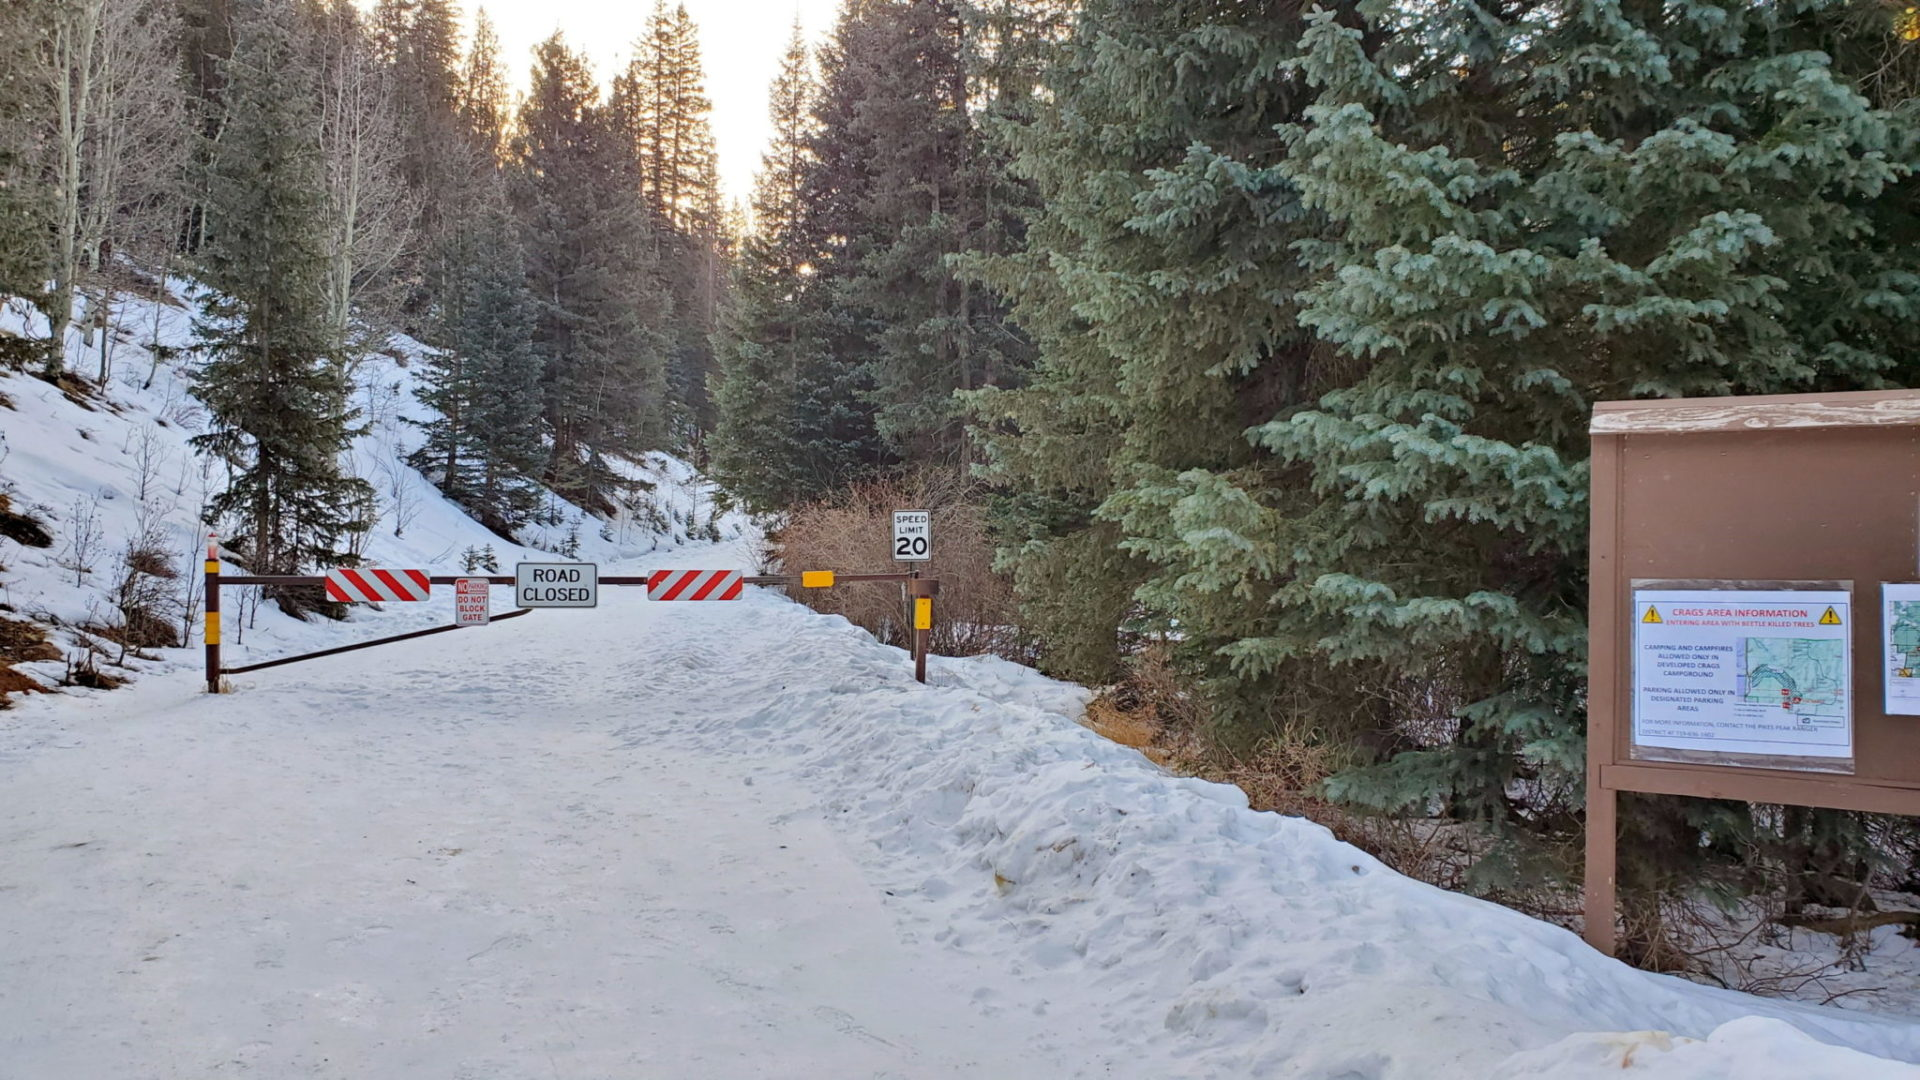 Winter road closure 1.1 miles from the trailhead